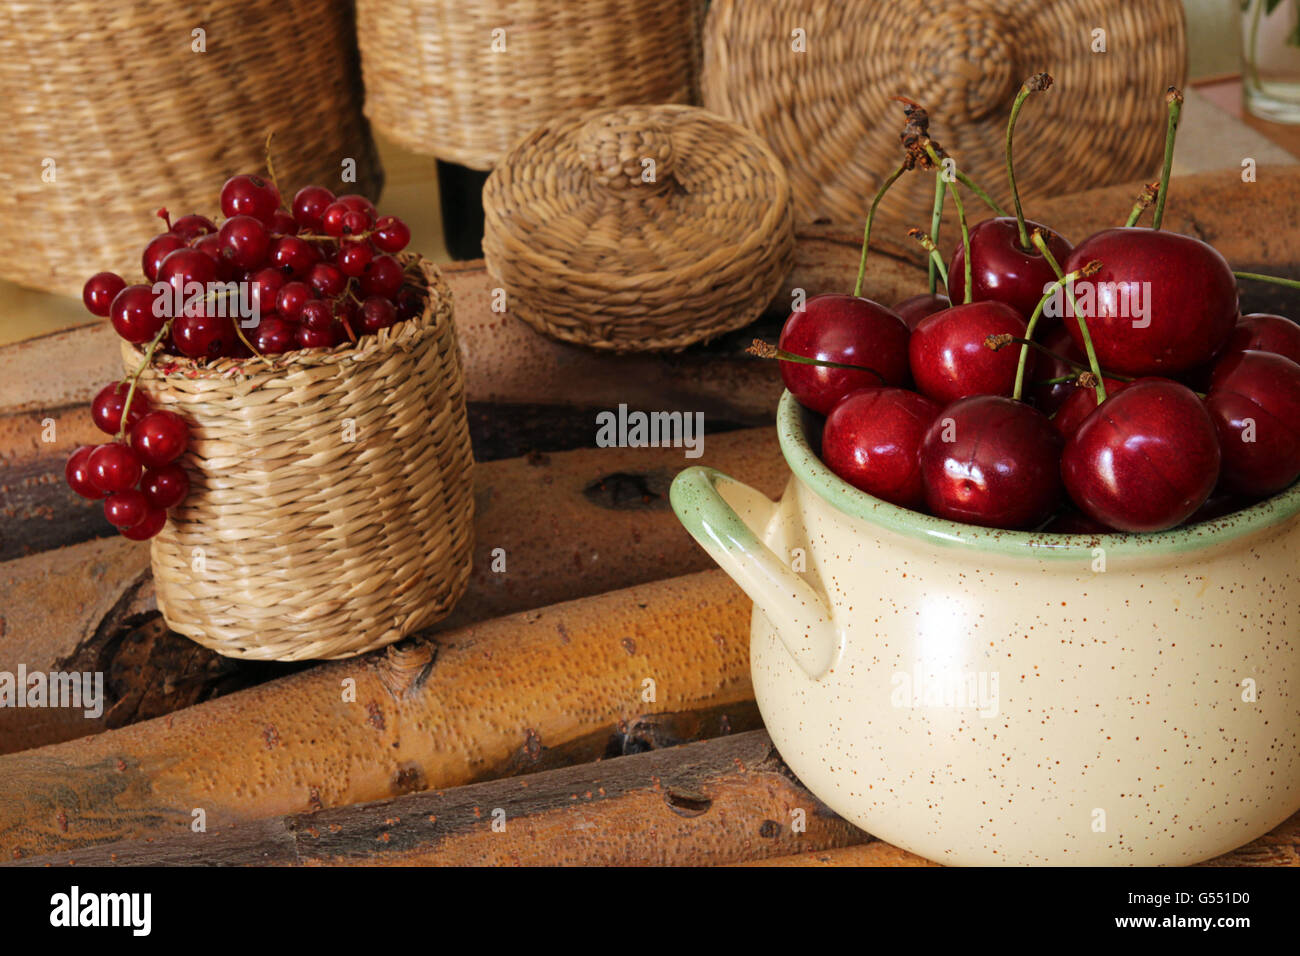 Sweet cherry in ceramic bowl and red currant in wattled bast basket - Stock Image